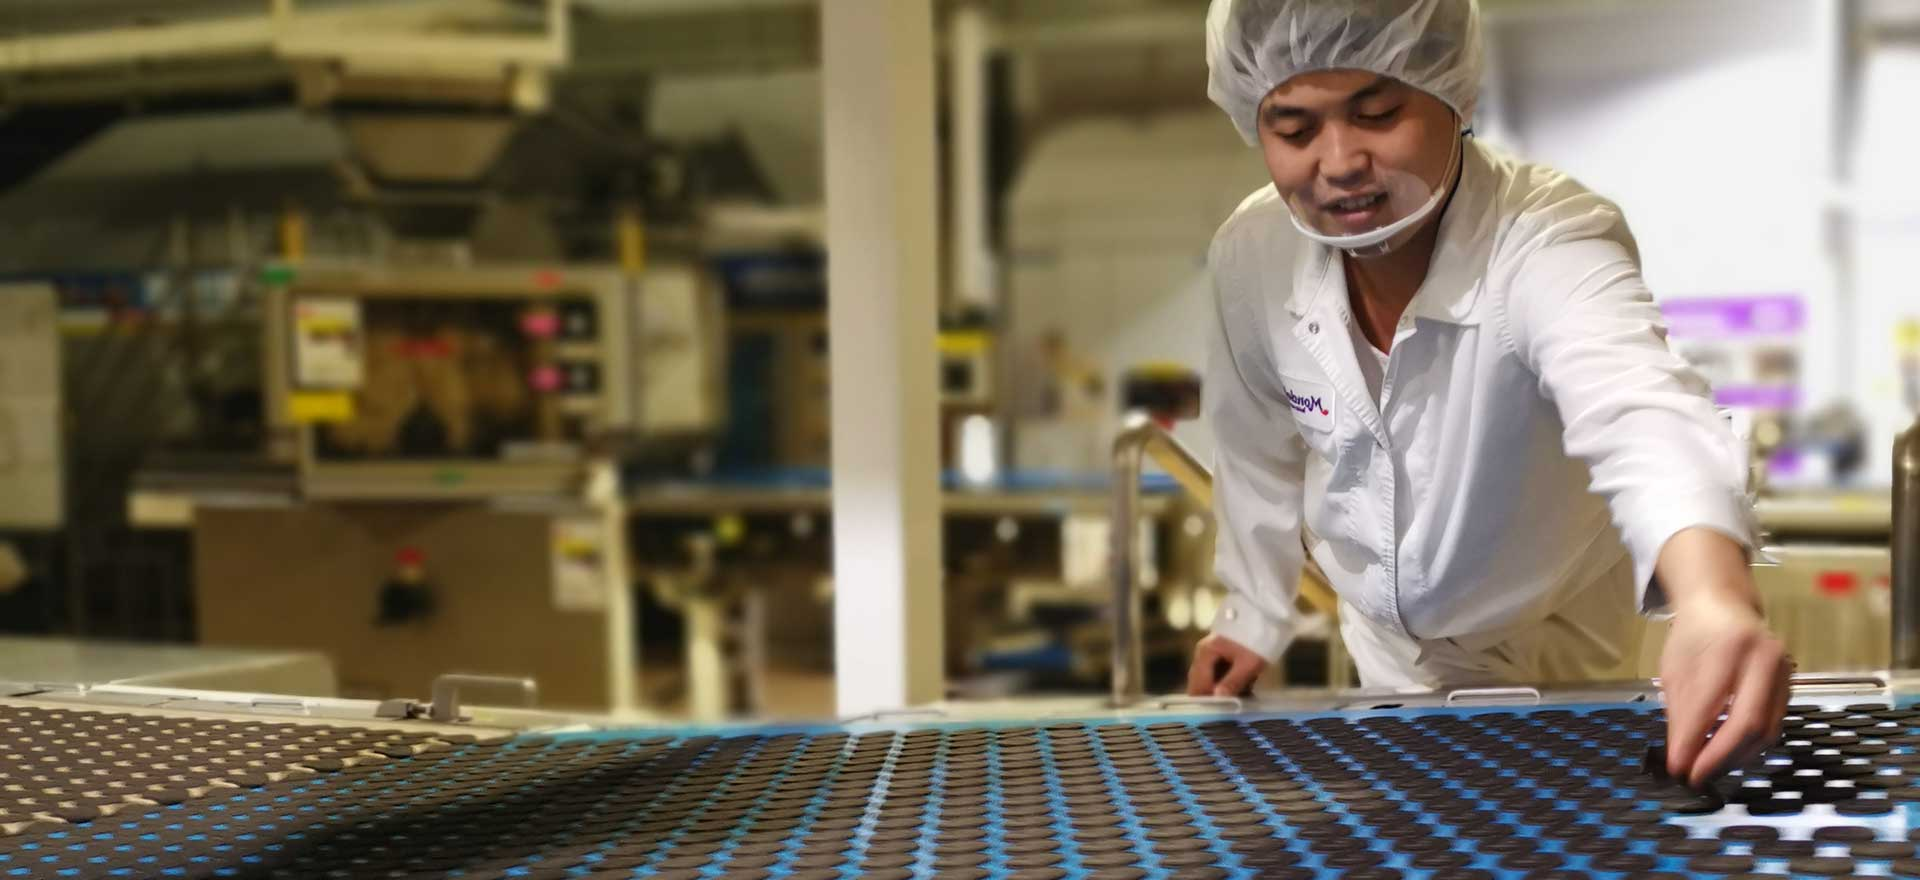 Mondelez factory worker smiling while inspecting Oreo cookies on assembly line.